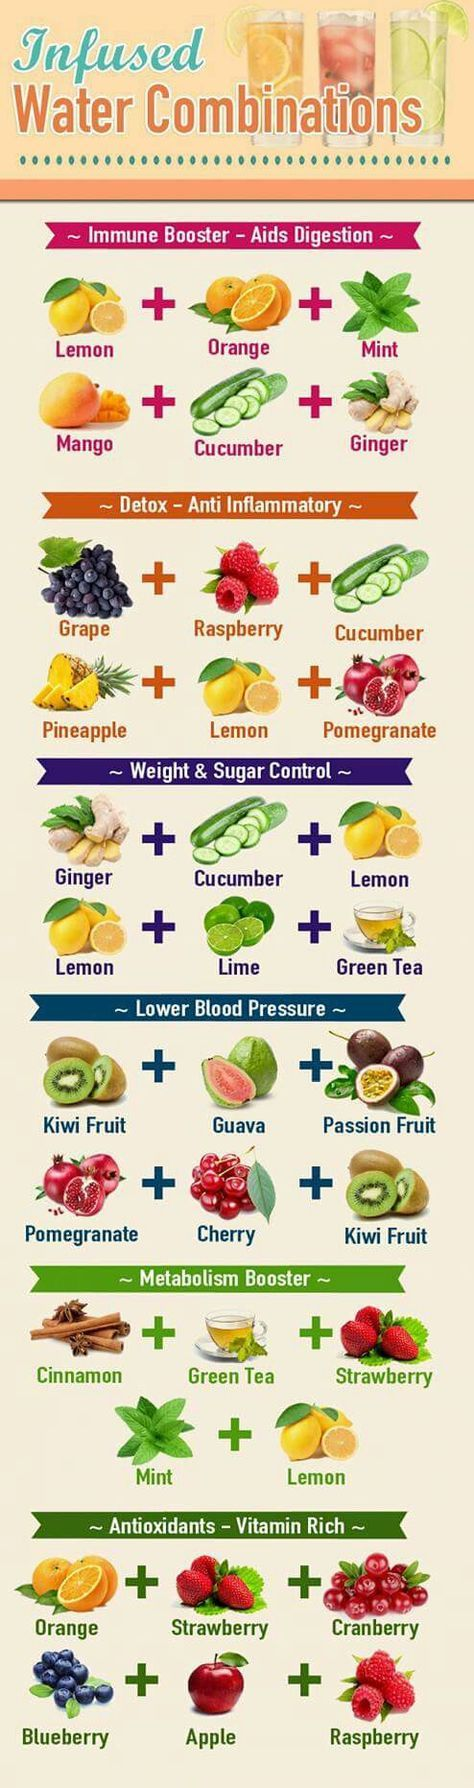 INFUSED WATER COMBINATIONS